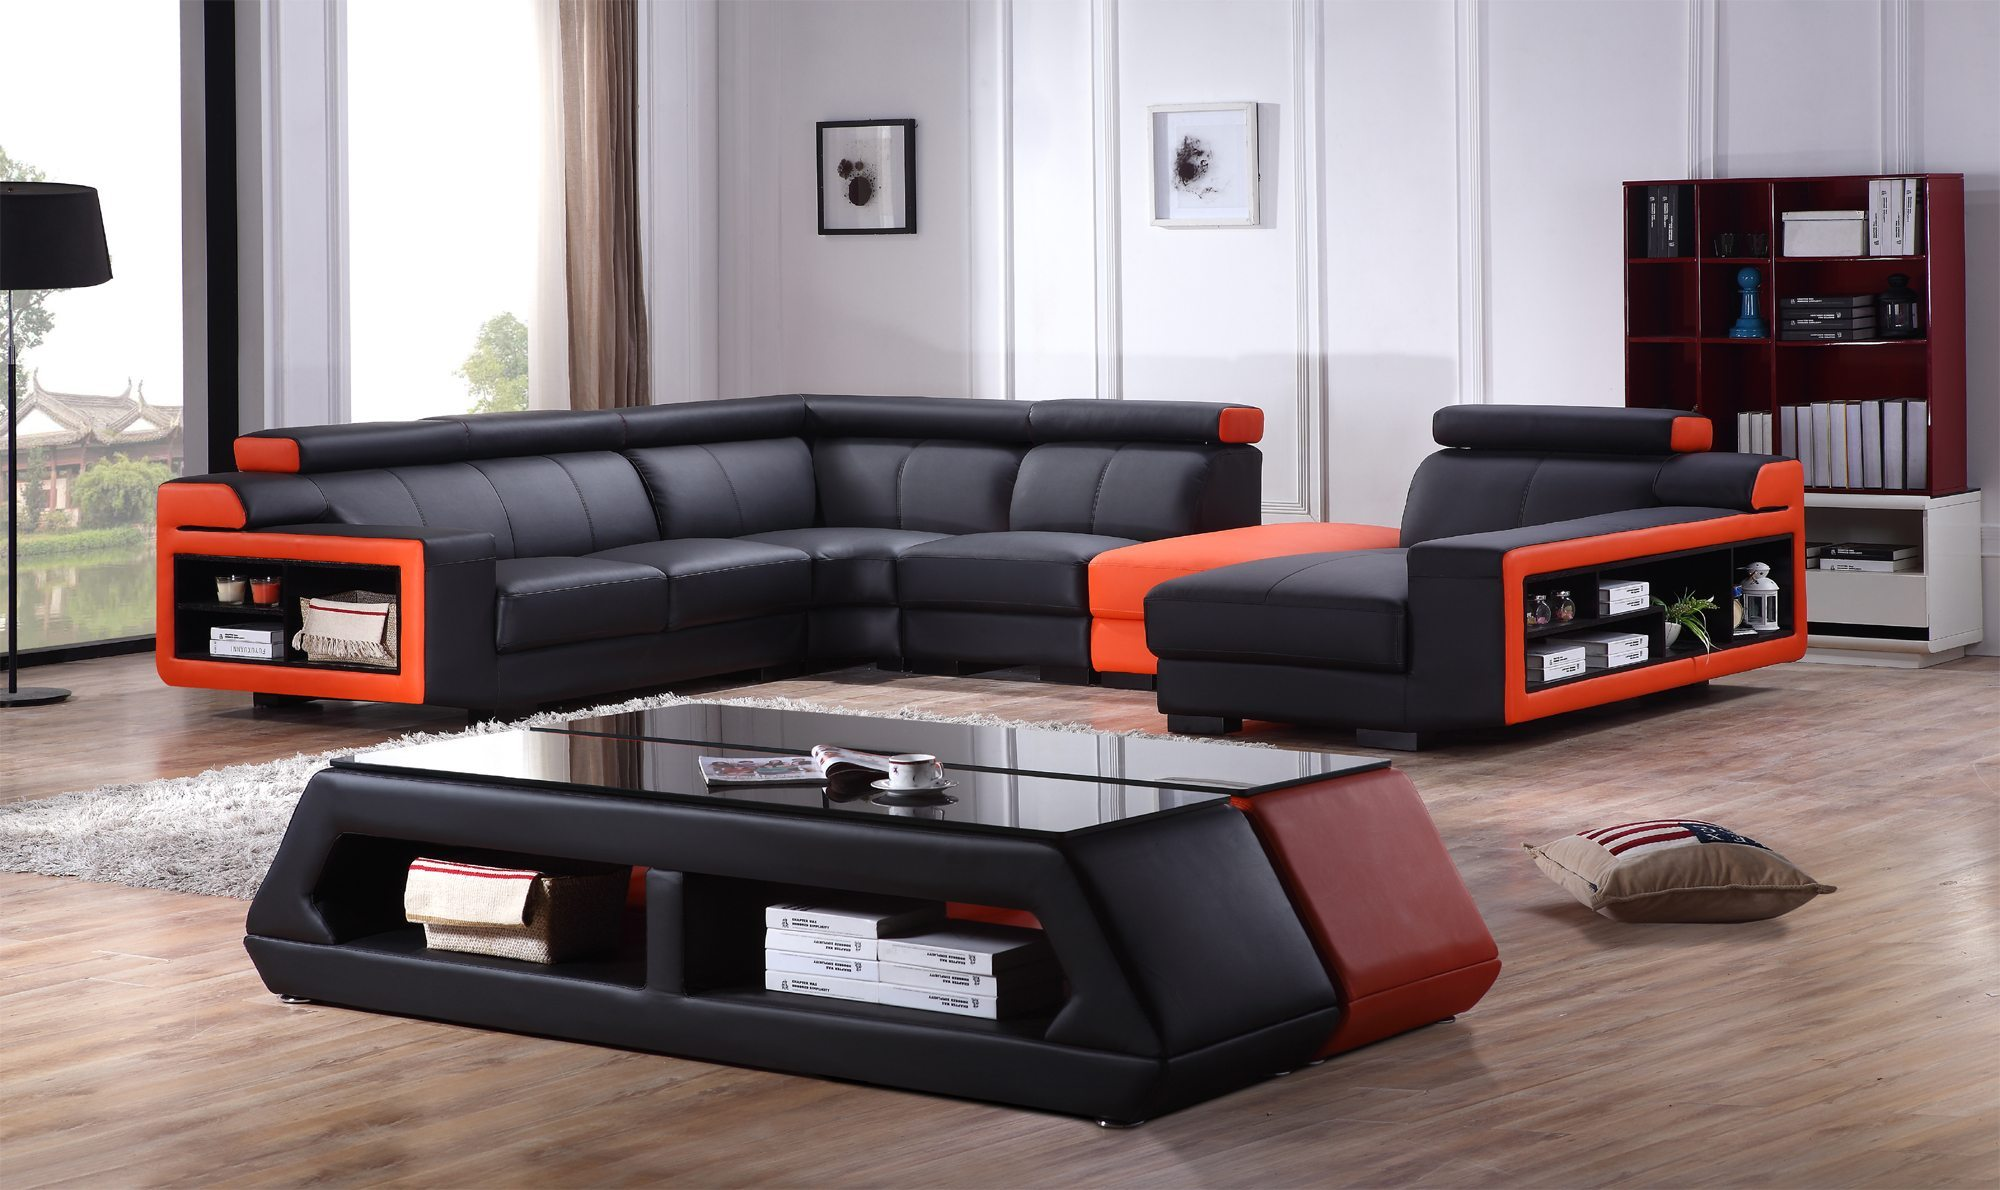 Lounge Couch Modern L-shape Sofa - Joy Furniture